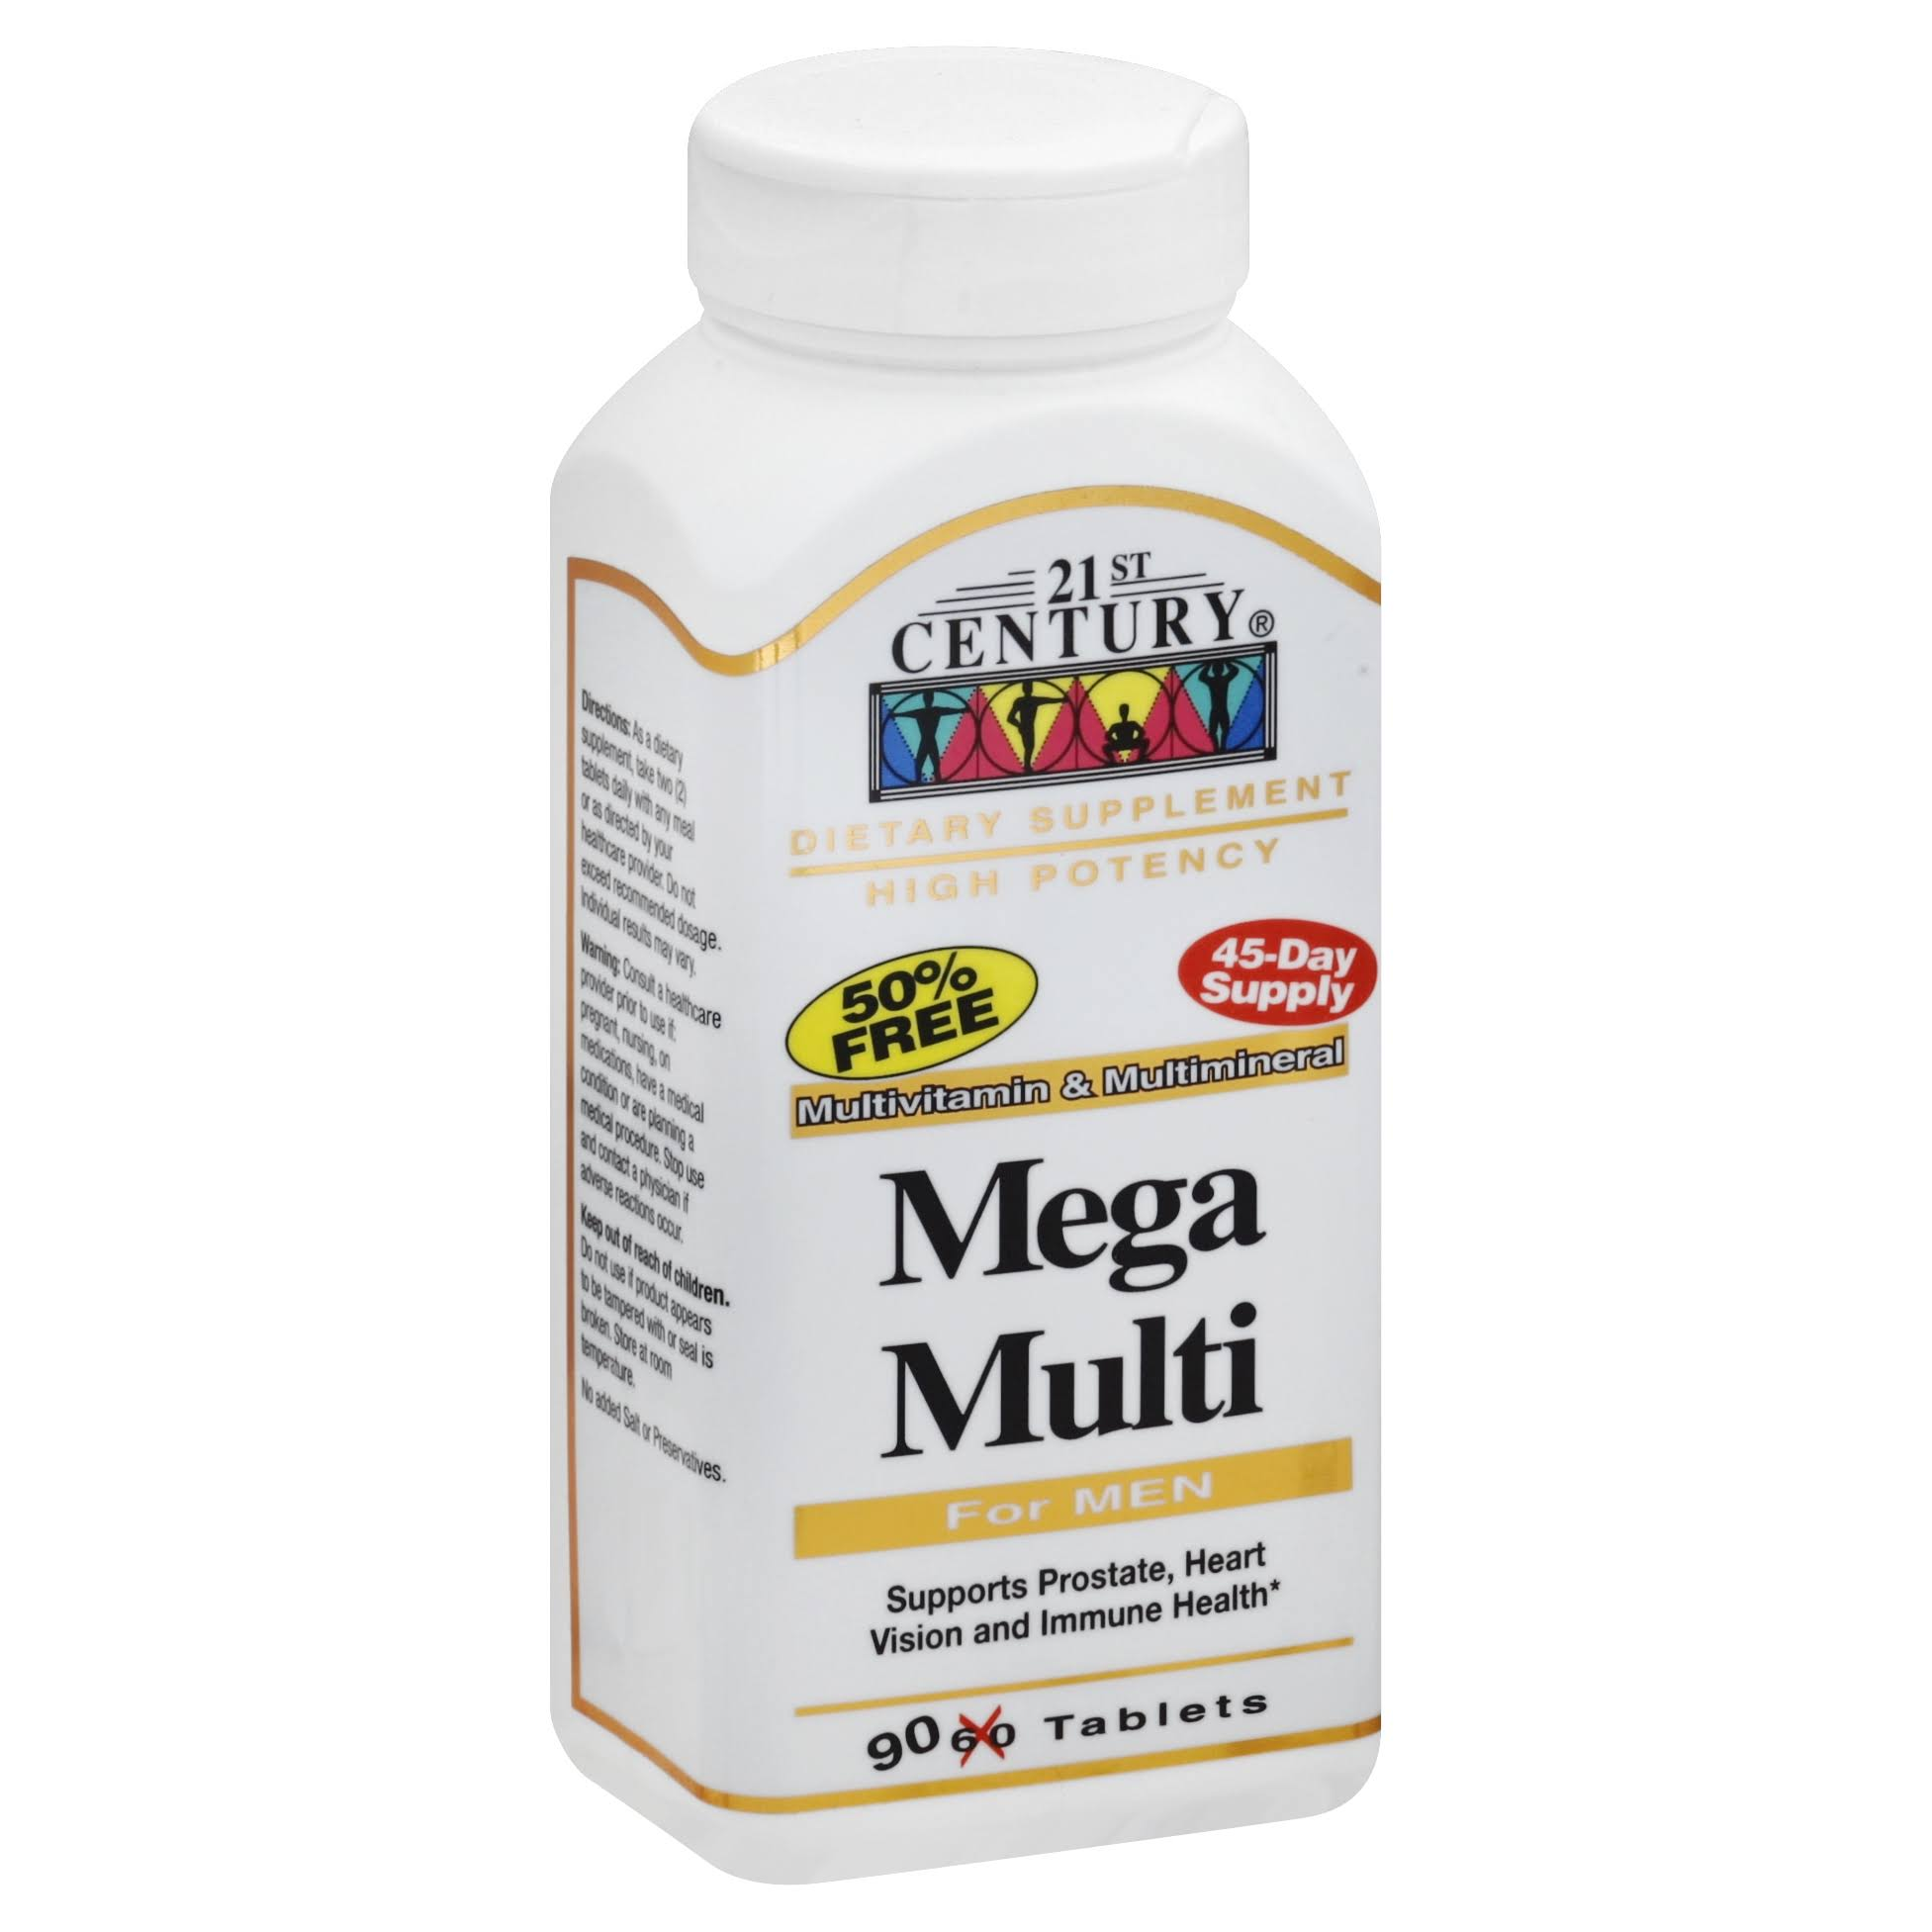 21st Century Men's Mega Multi Supplement - 90 Tablets